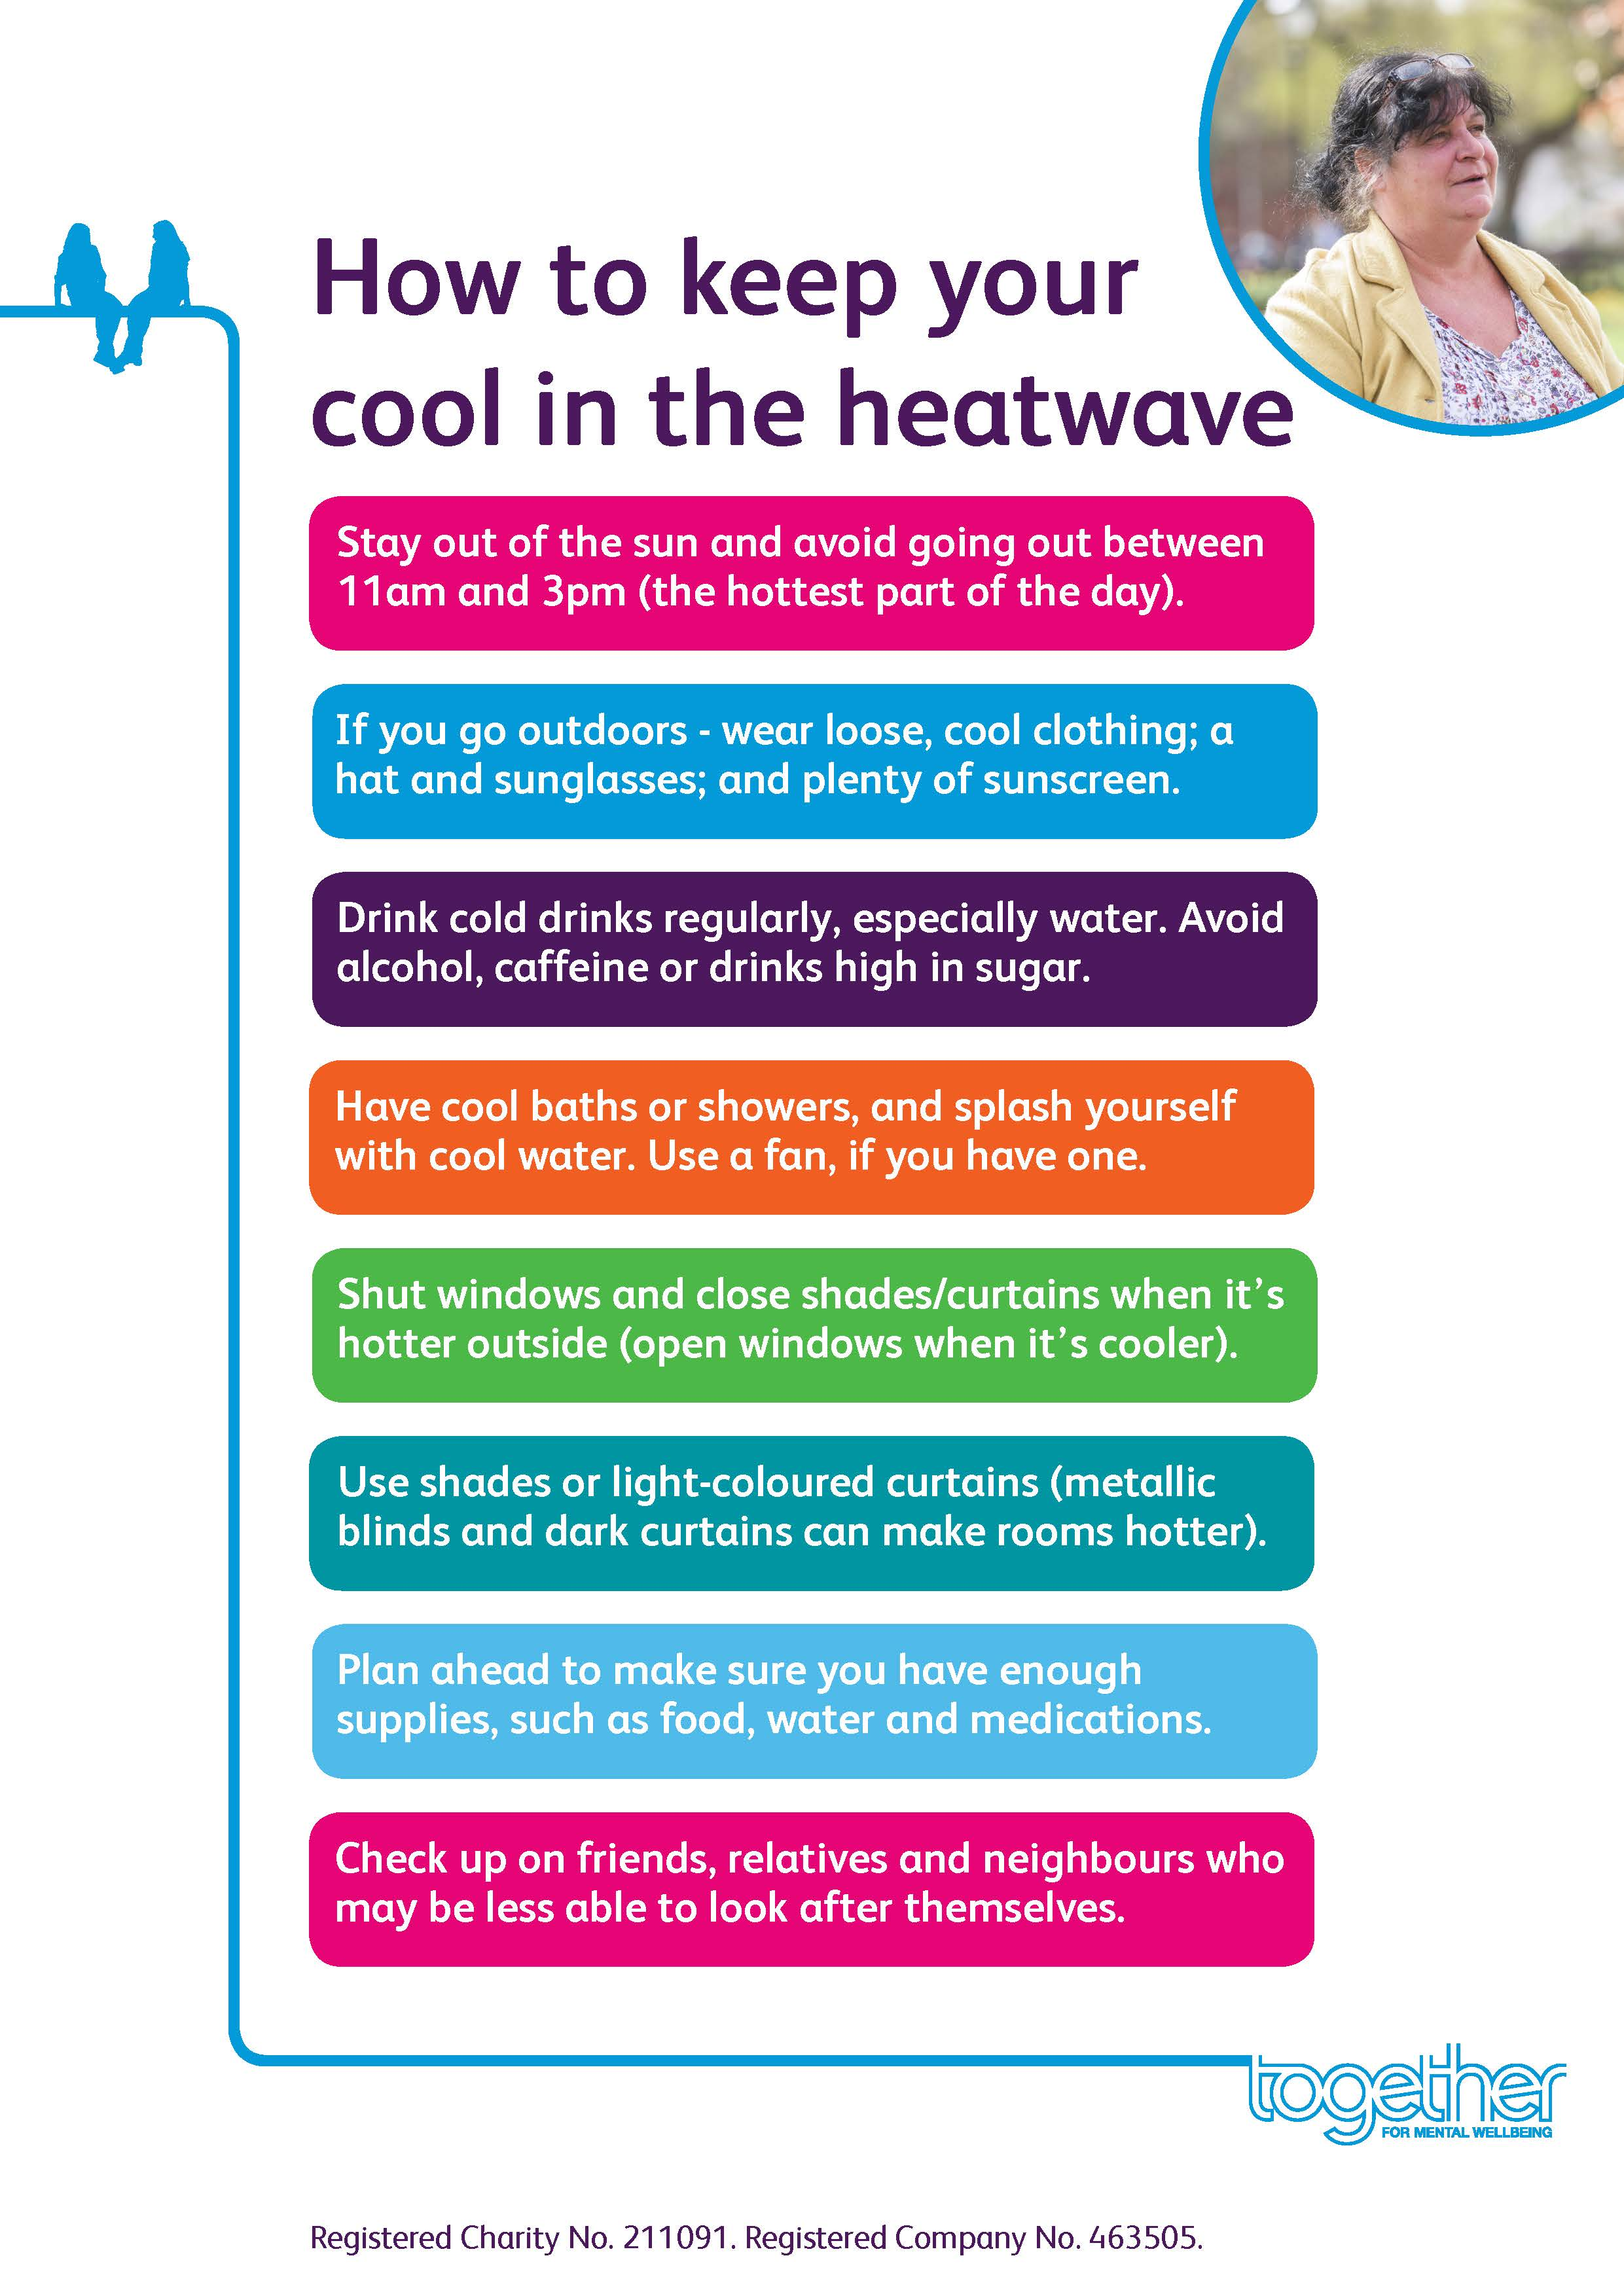 Together keeping cool in hot weather advice